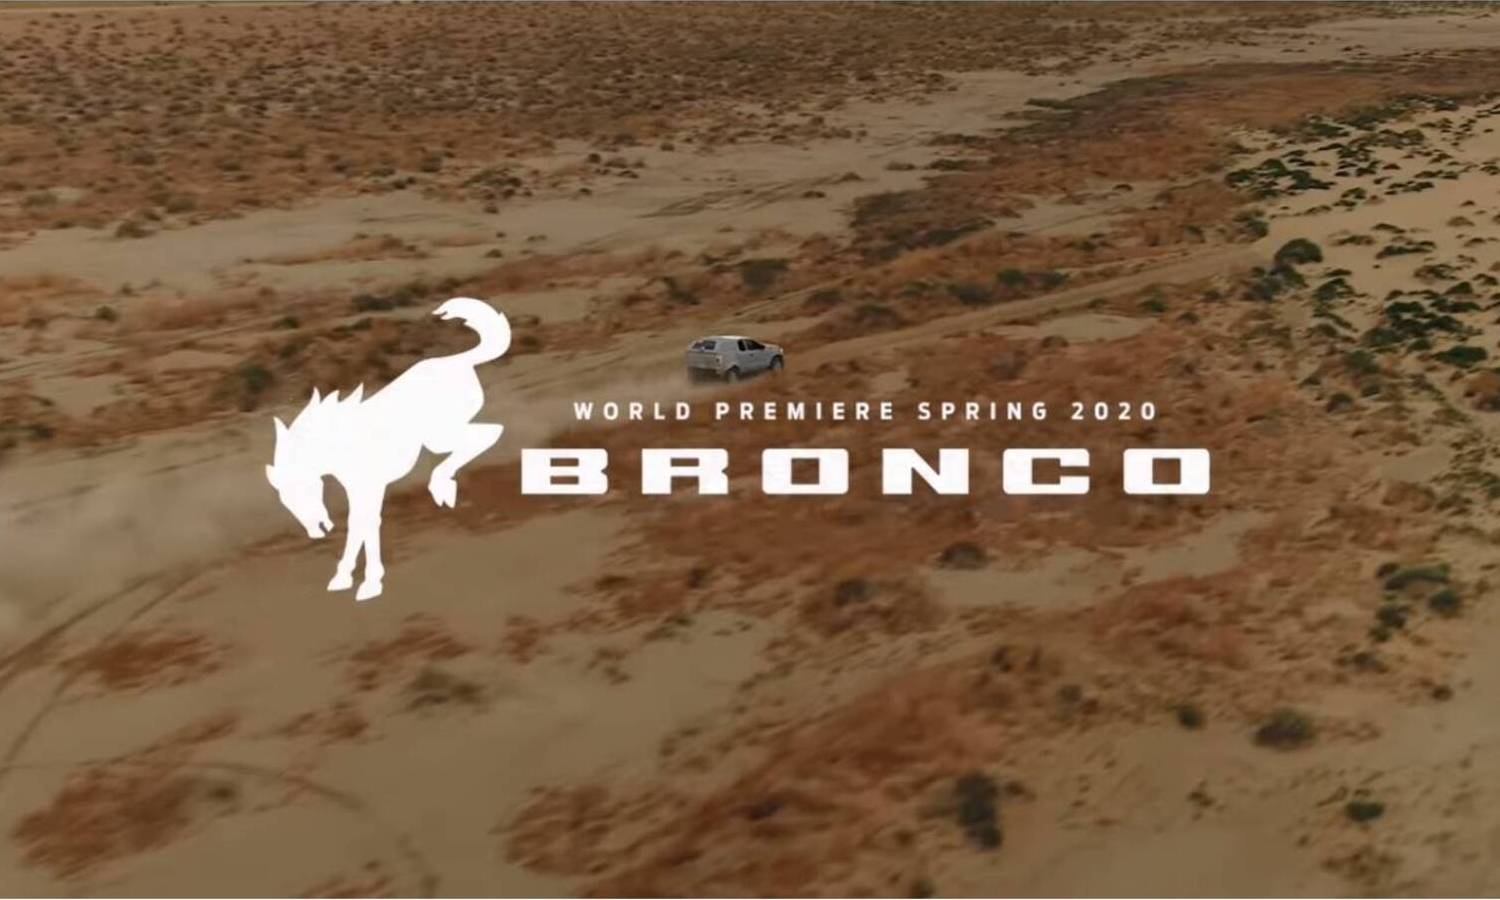 Ford Bronco world premiere